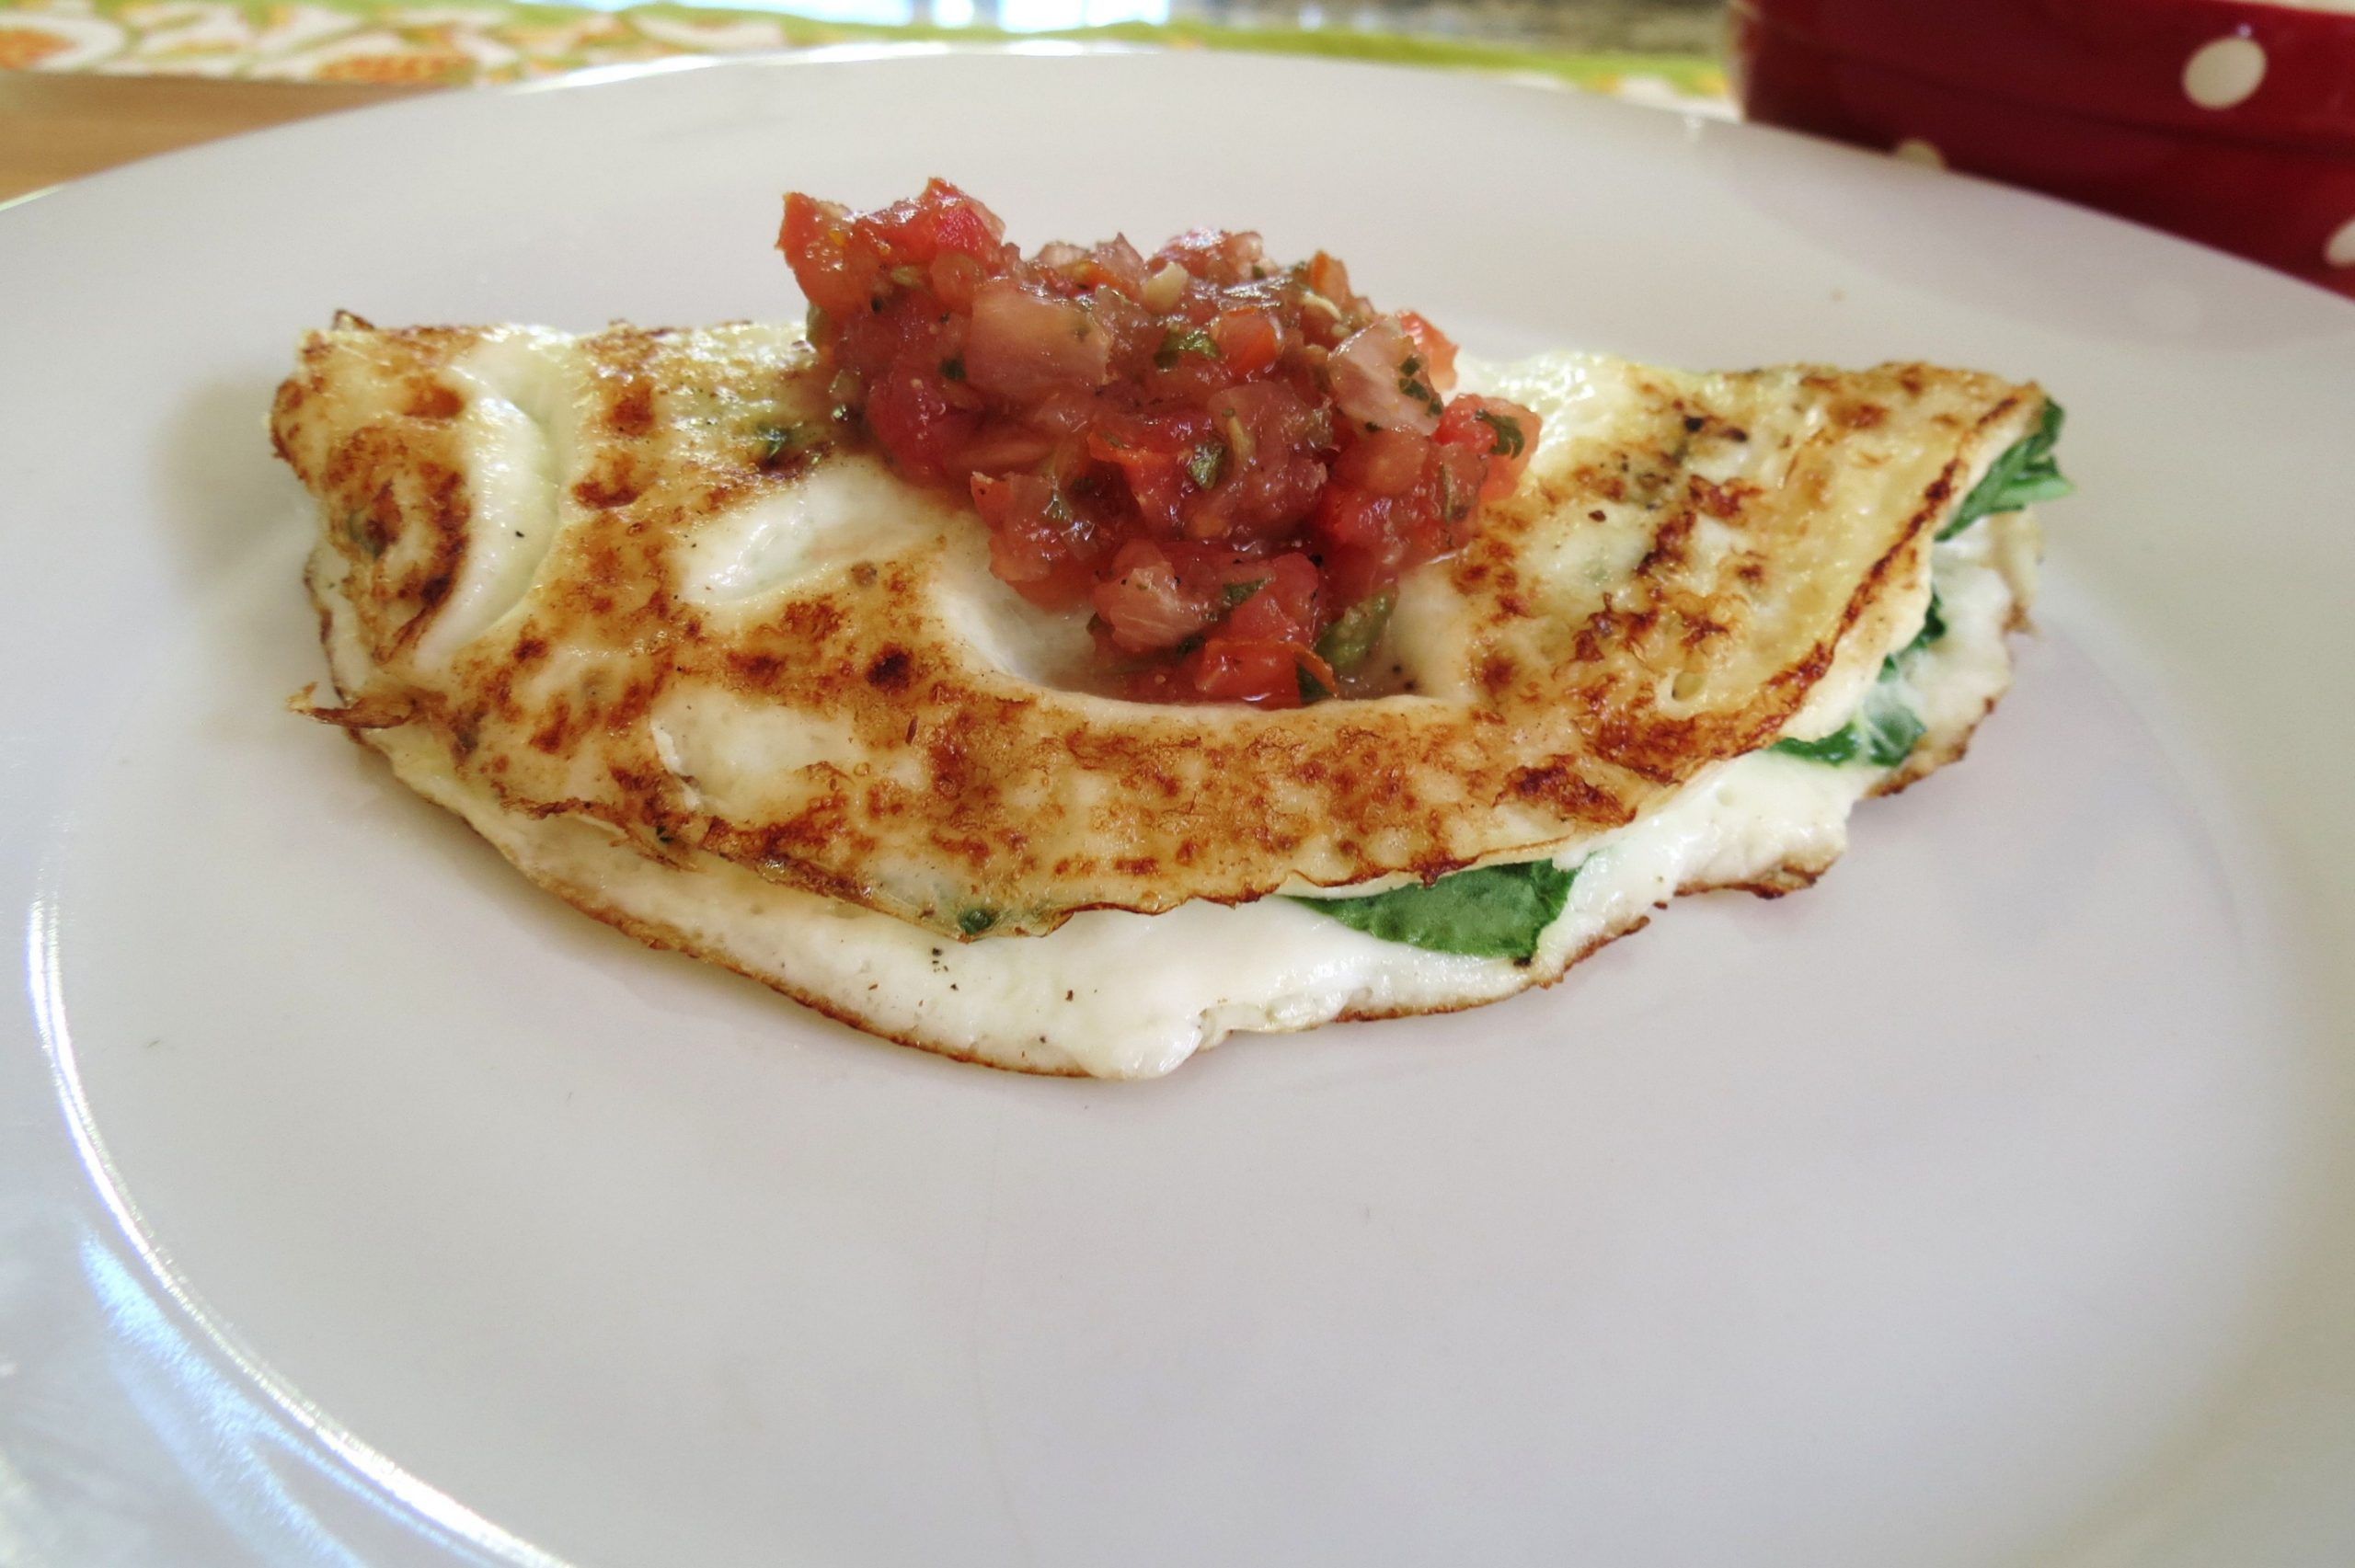 Spinach and Cheese Egg White Omelet